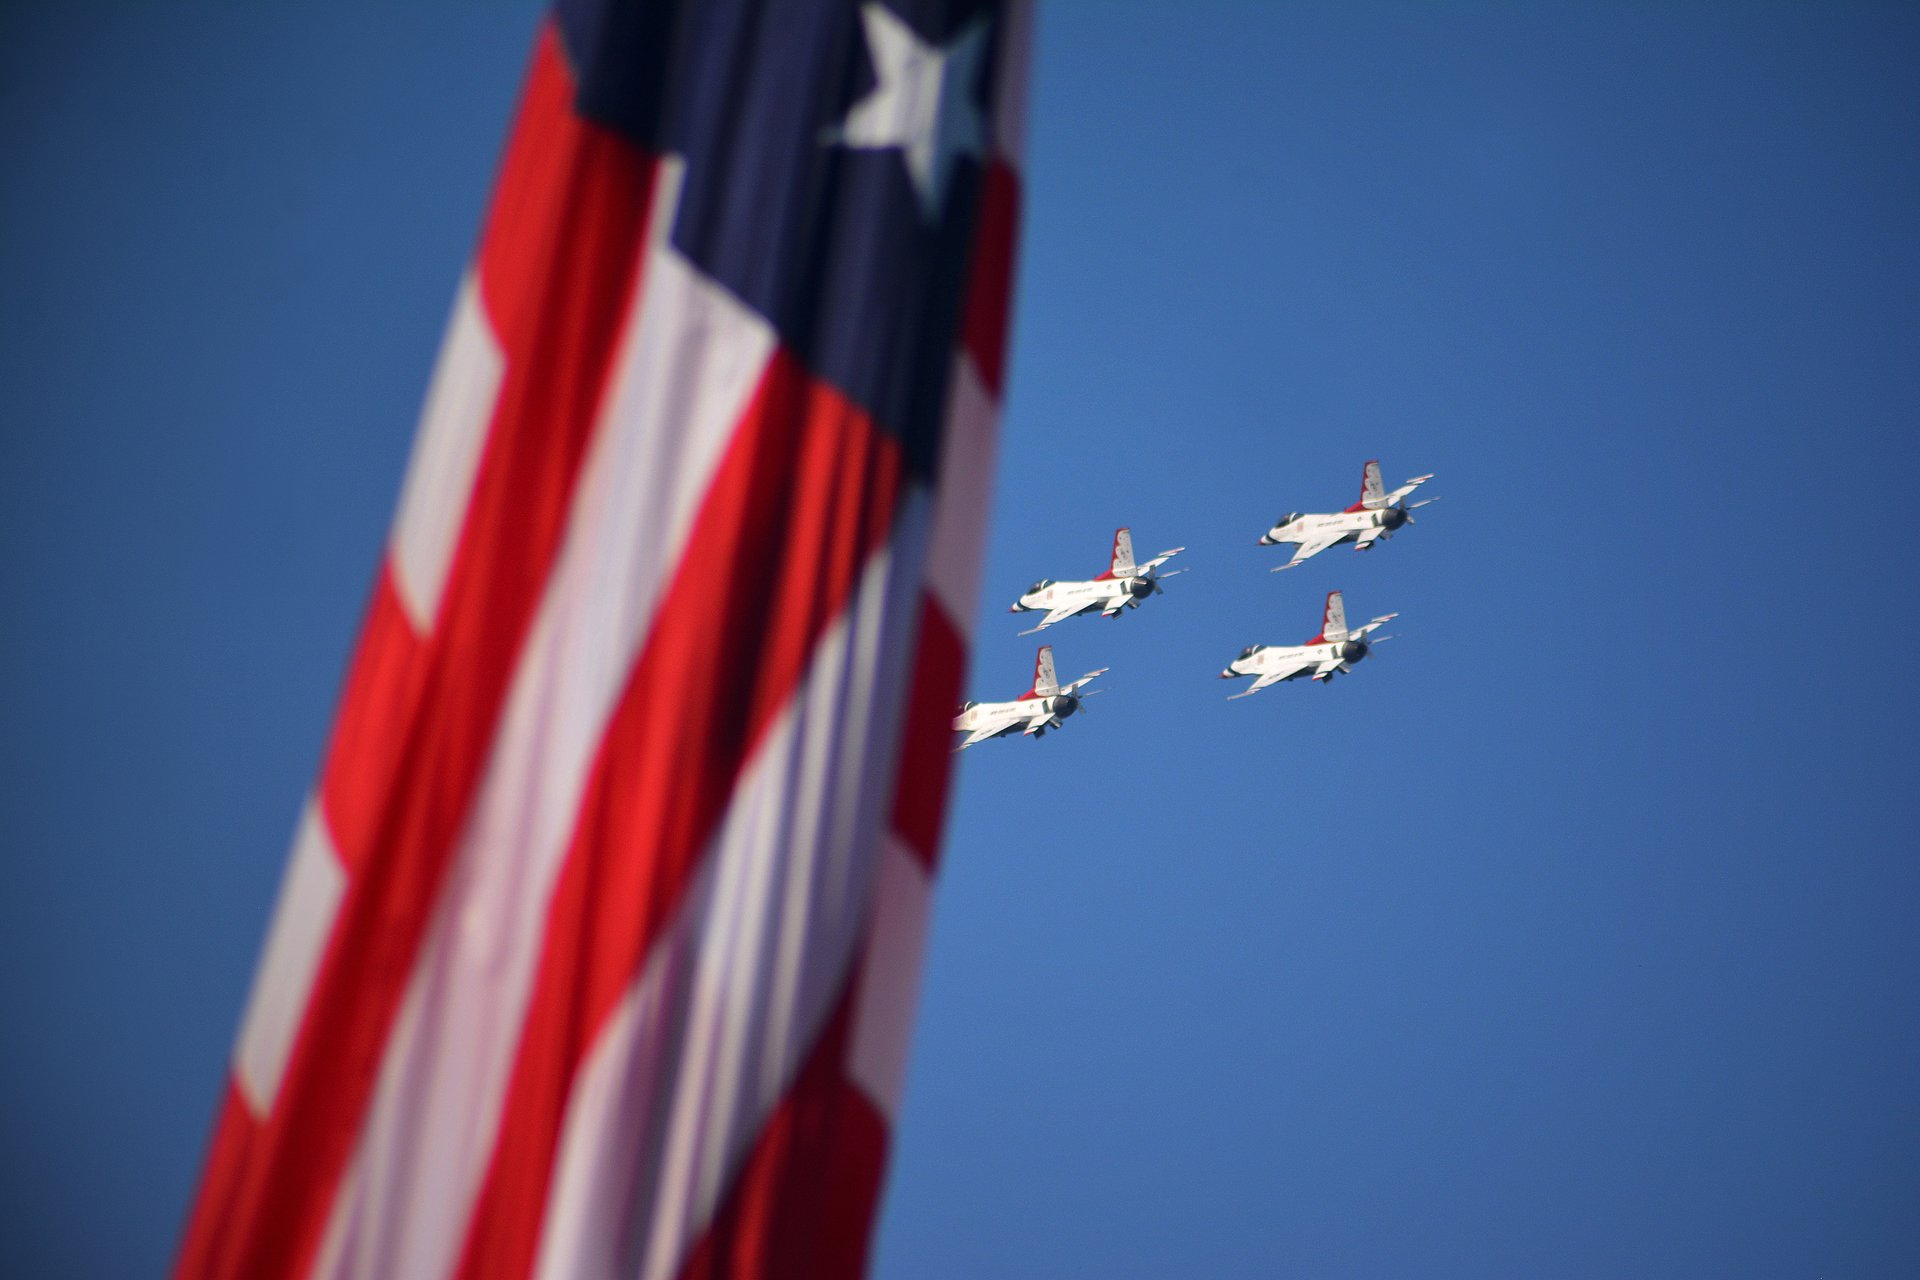 United States Air Force Thunderbirds 2020